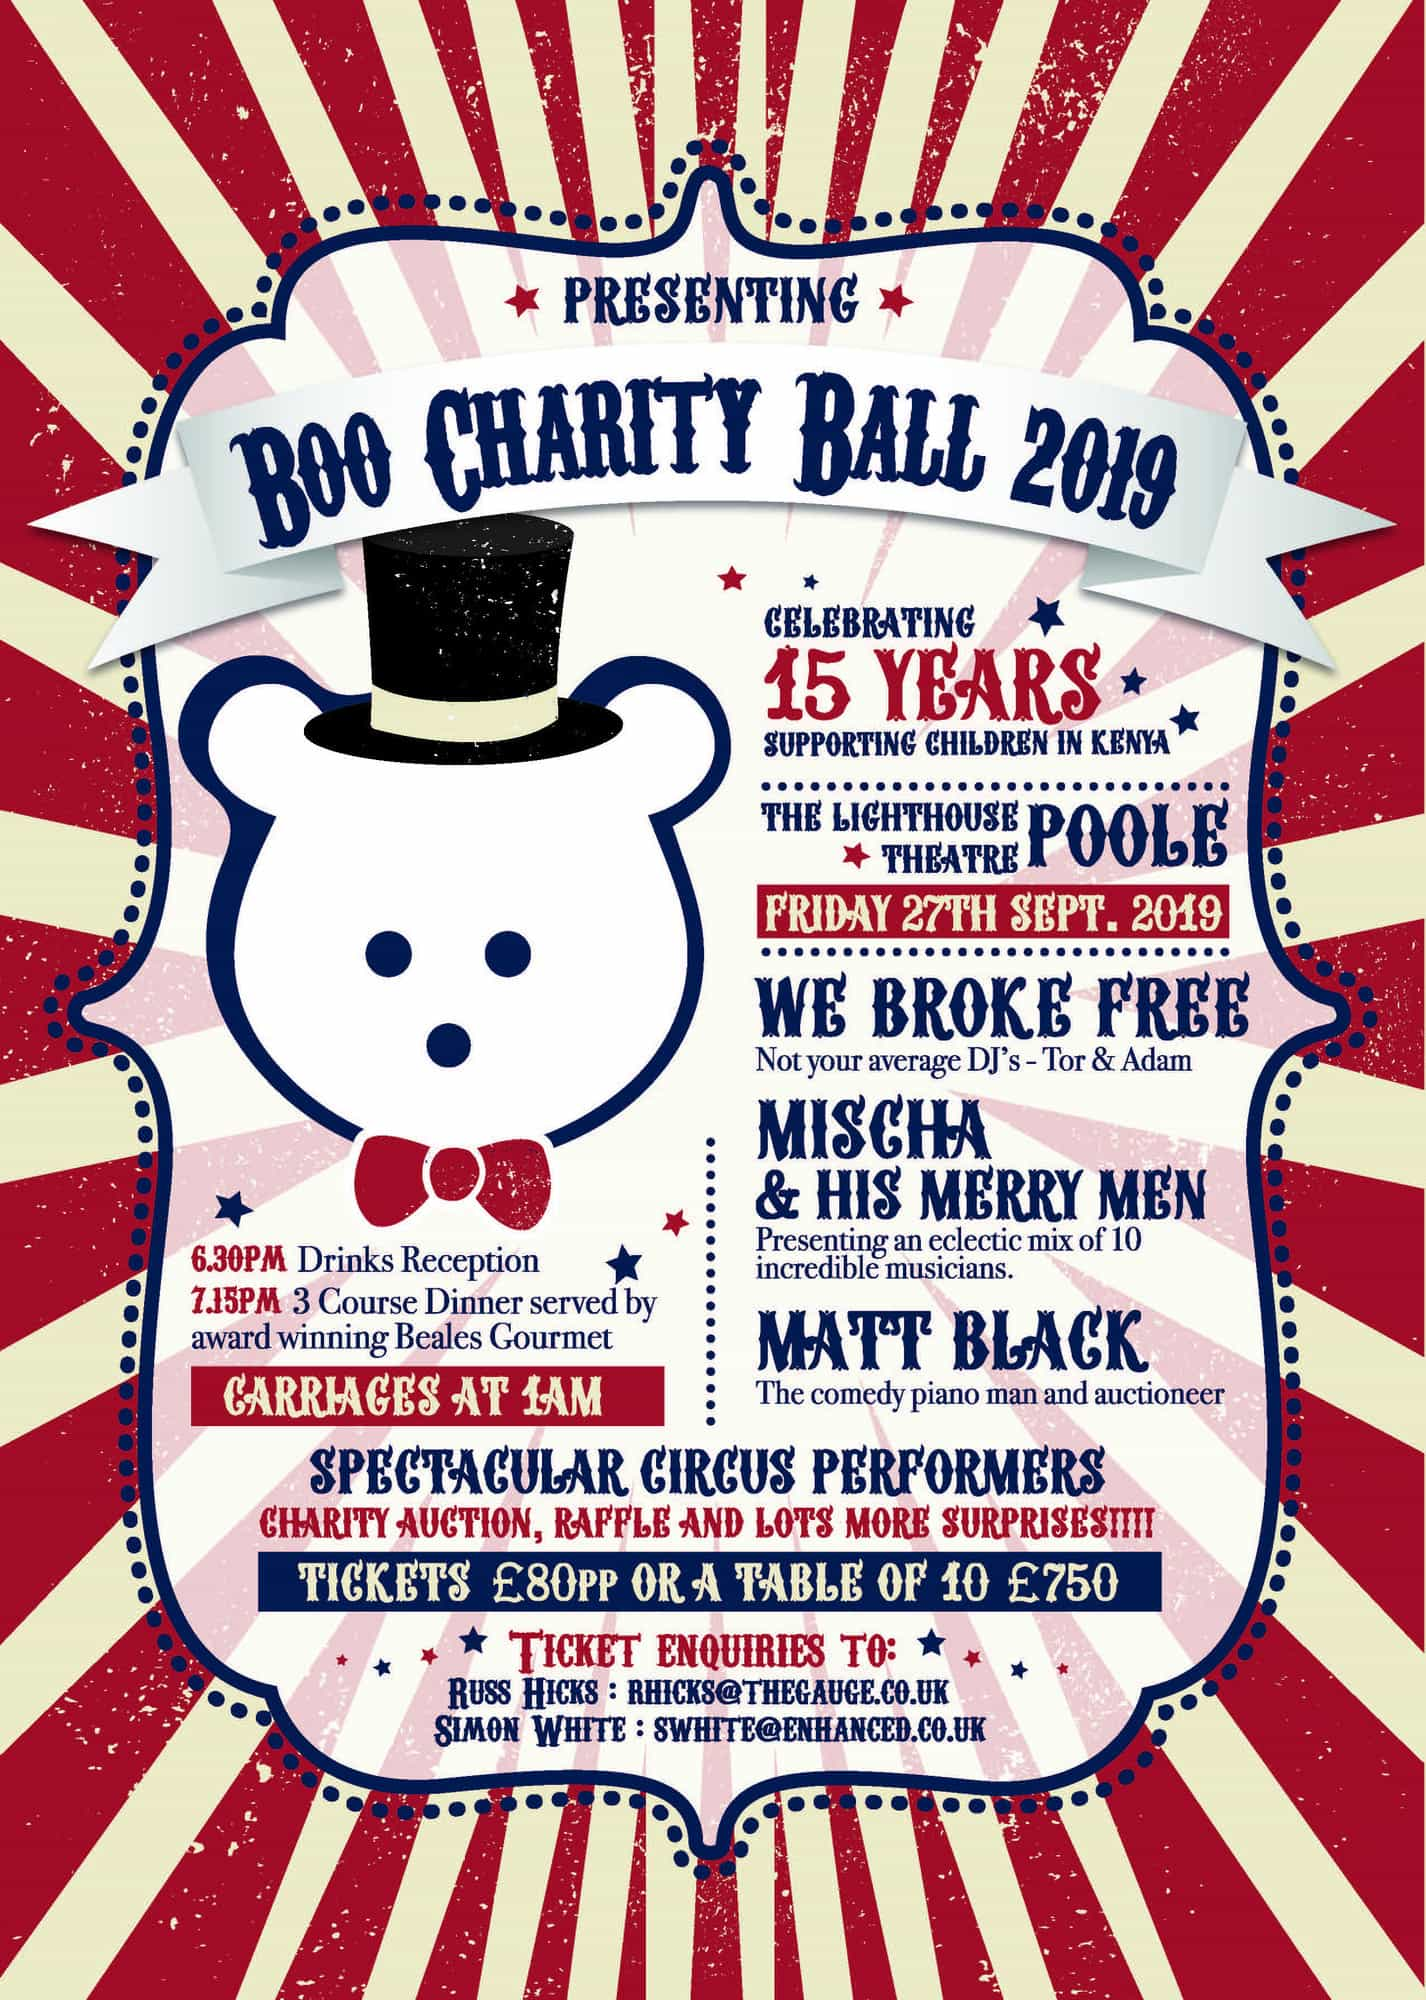 boo-charity-ball-2019-poster